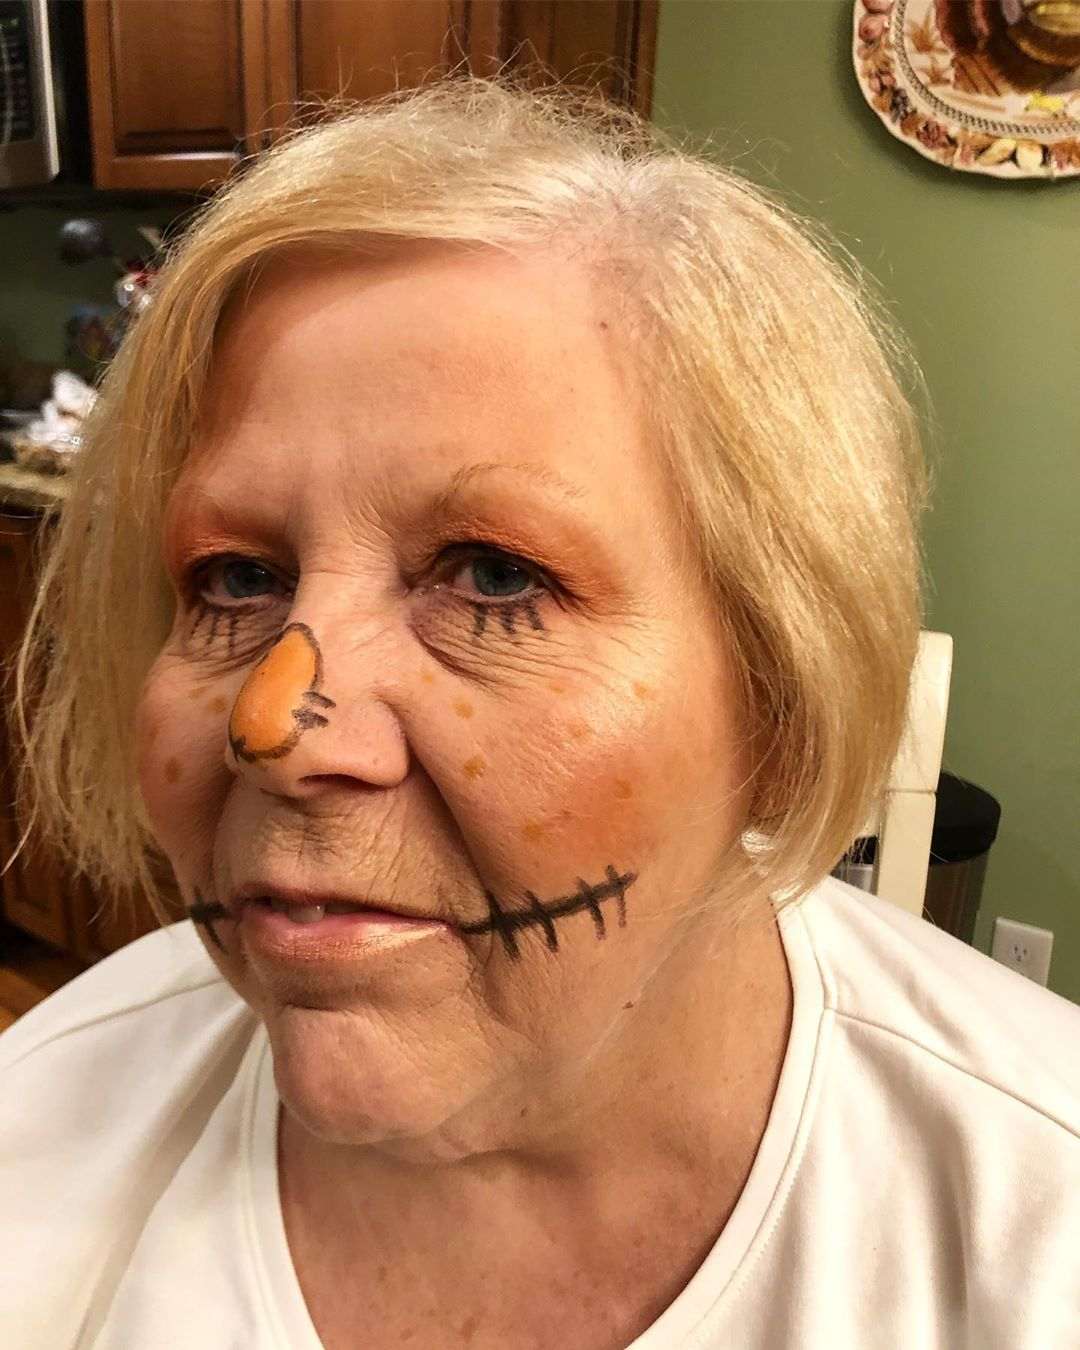 Scarecrow makeup for mrs Annell! Love doing Halloween looks ... #scarecrowmakeup